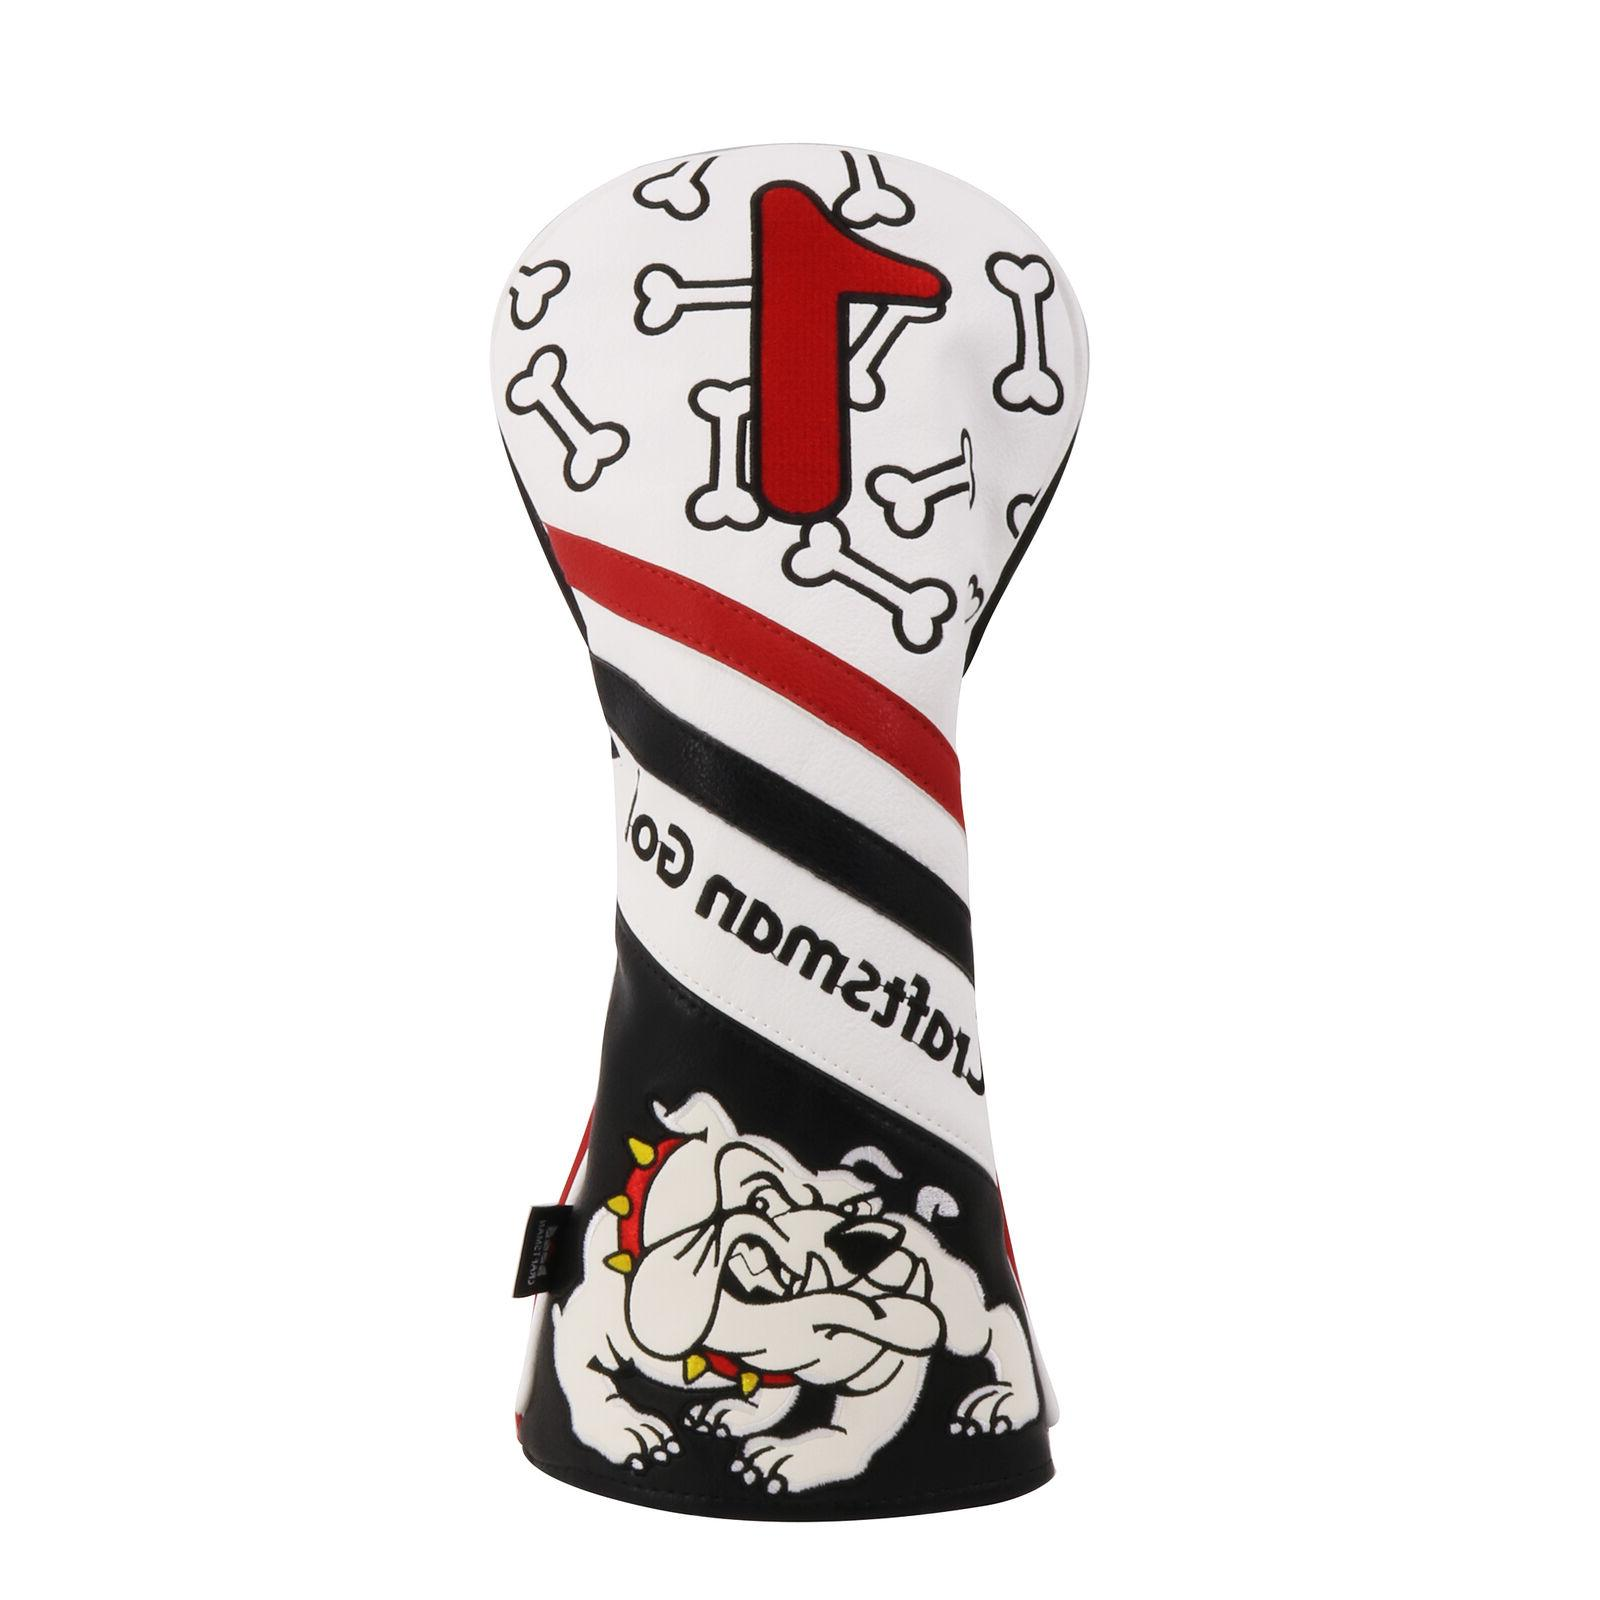 Craftsman Golf America Shield Golf Driver Headcover for Tayl